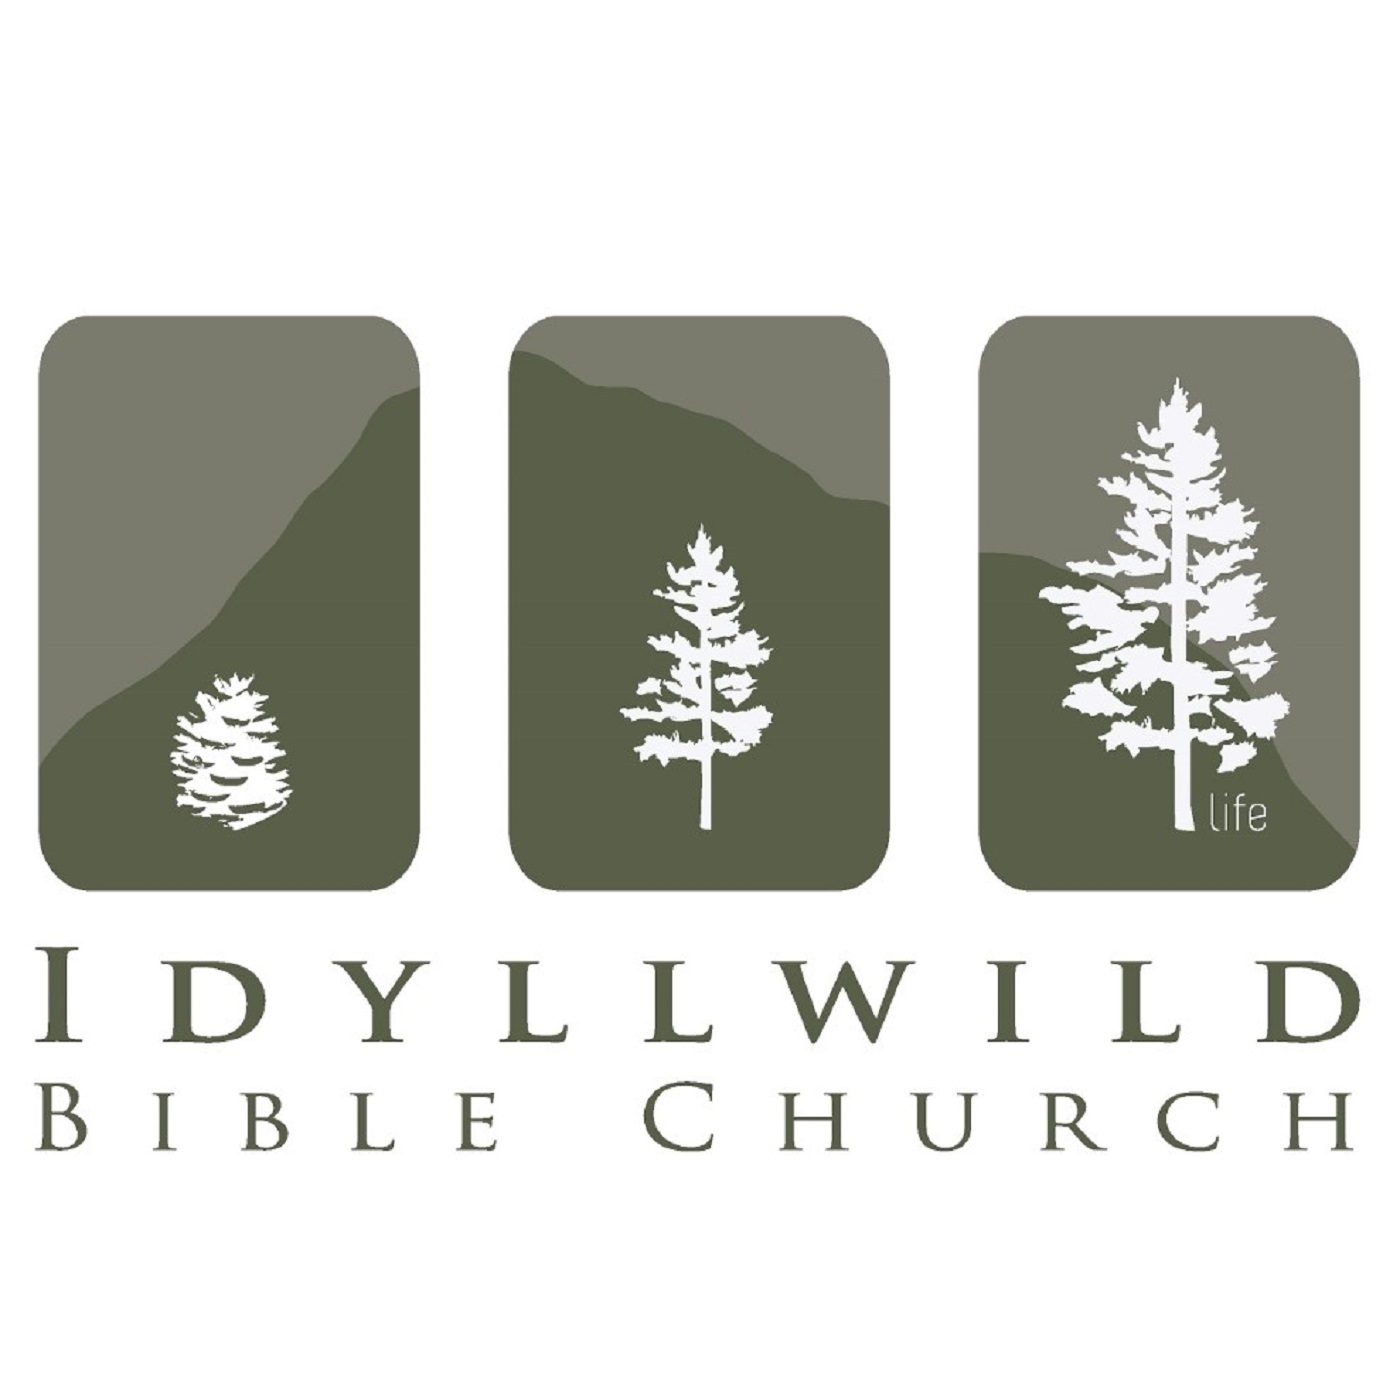 Idyllwild Bible Church